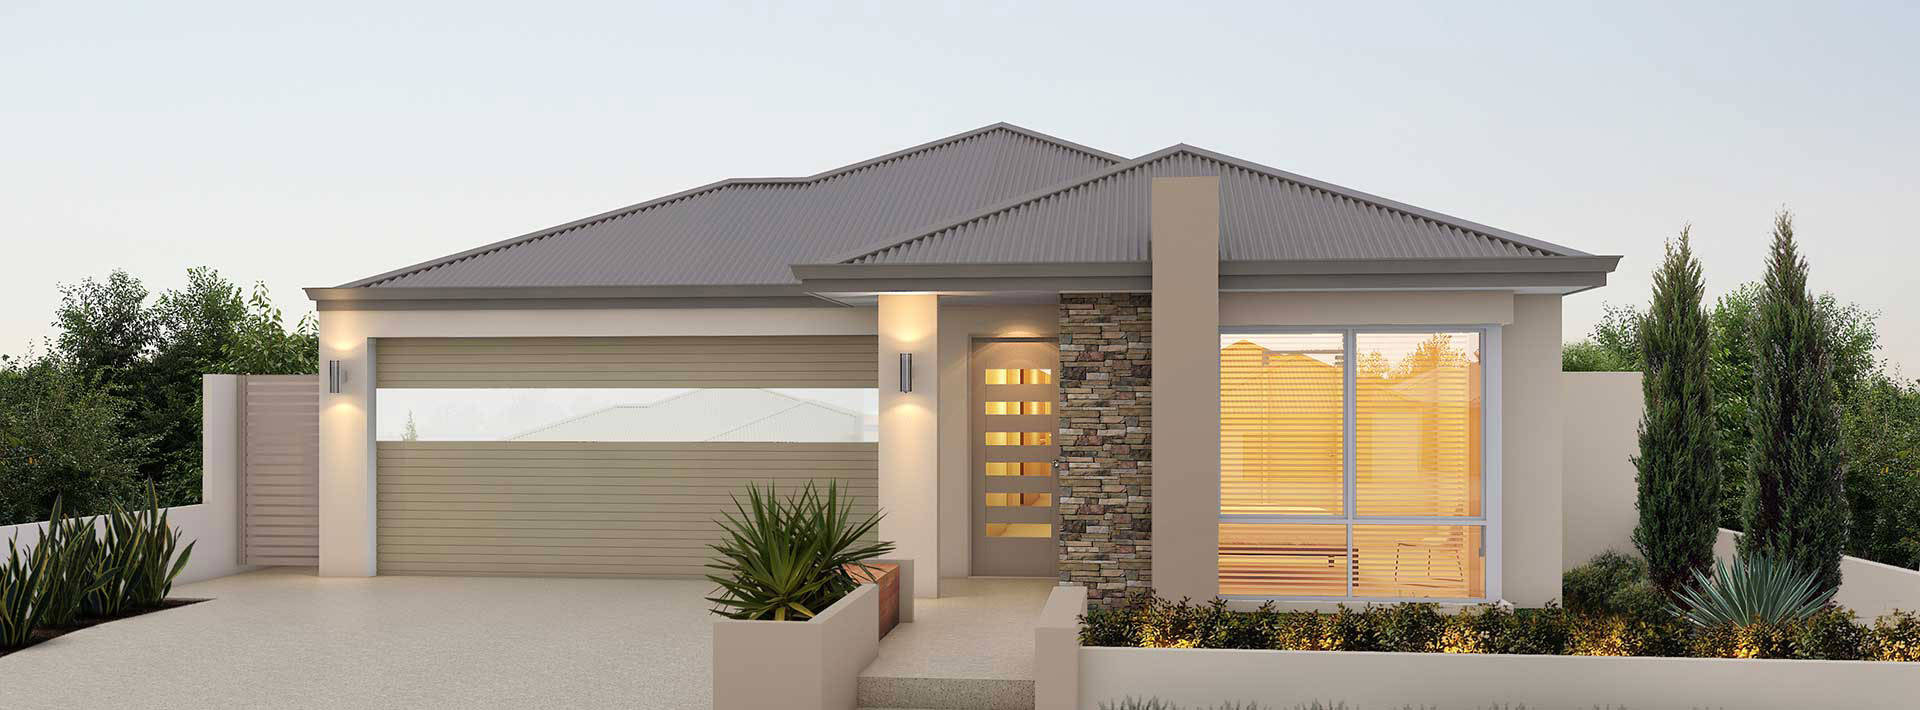 "House frontage of single storey home design ""My Noosa"""